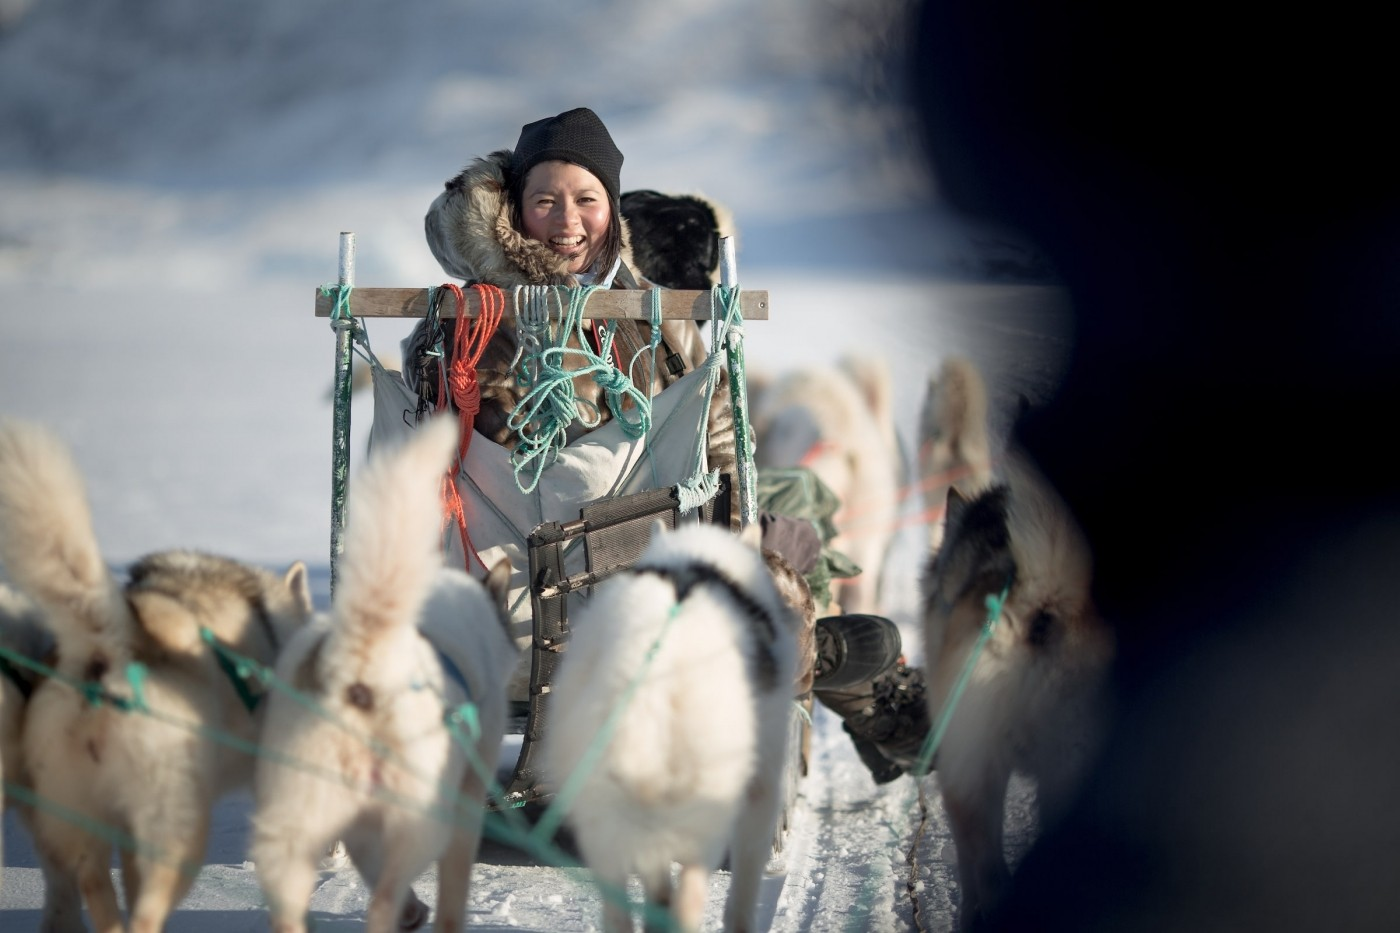 A Chinese traveler looking back at a following dog sled near Ilulissat in Greenland. Photo by Mads Pihl - Visit Greenland